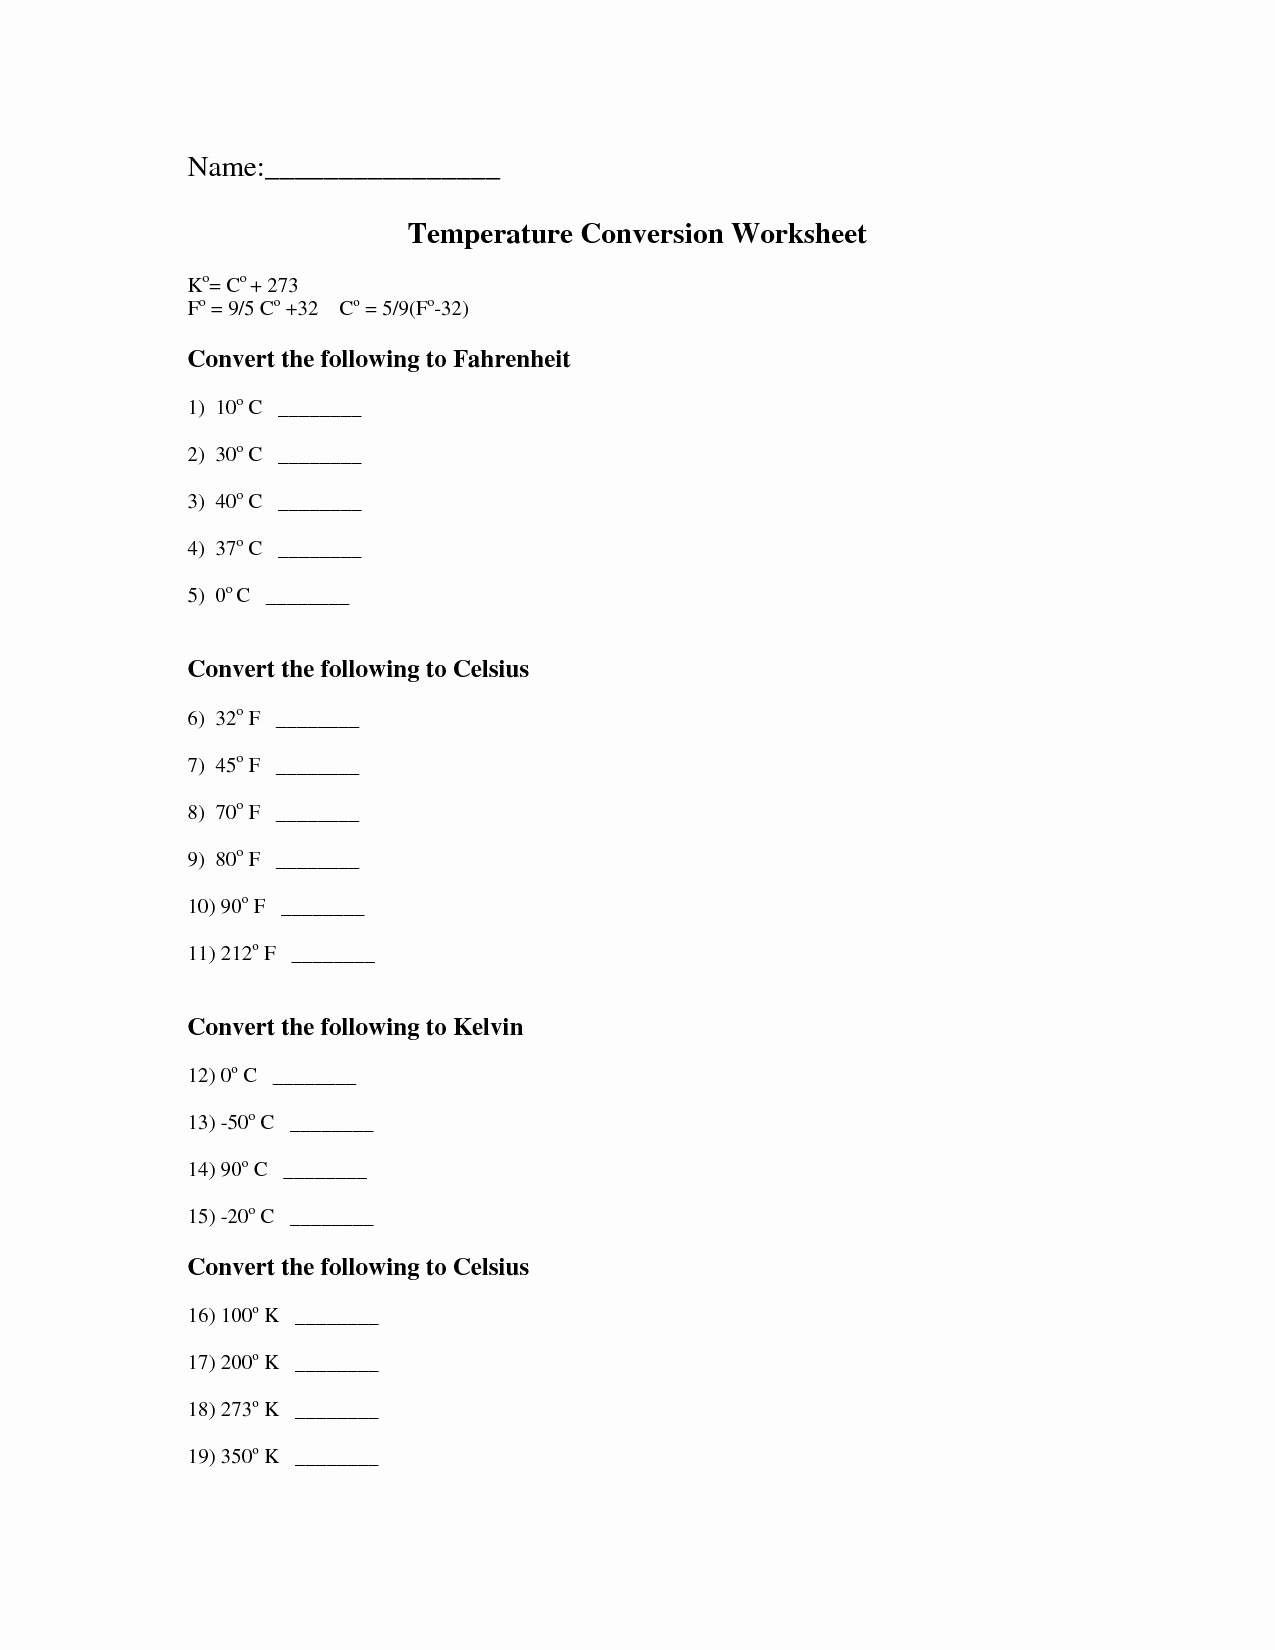 Temperature Conversion Worksheet Answers Elegant Worksheet Answers to Build A Fire